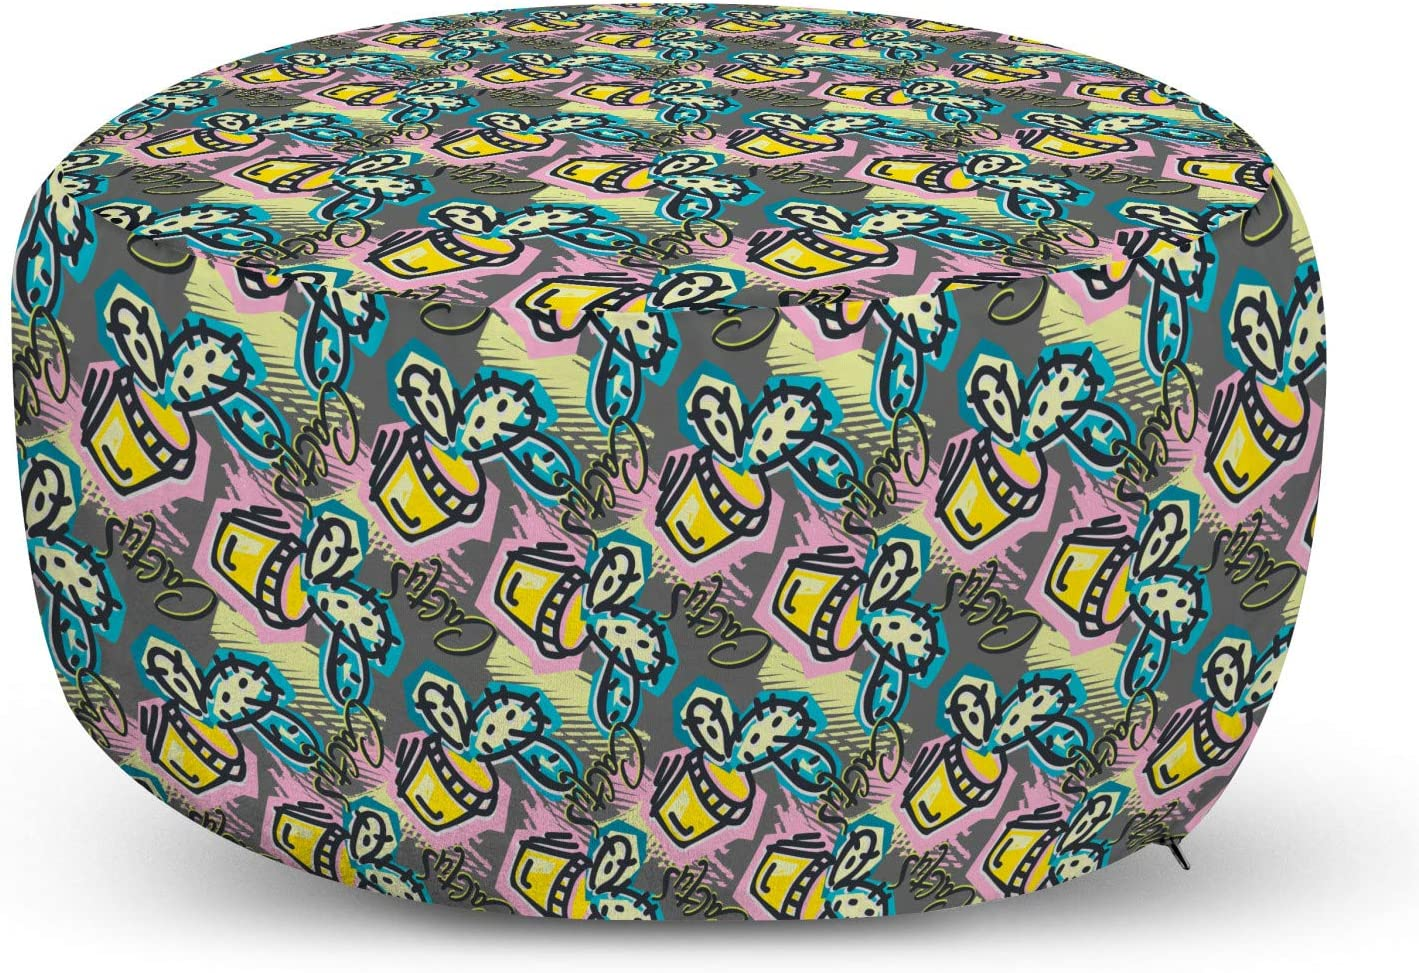 Lunarable Cactus Max 54% OFF Pouf Cover Outstanding with Design Energetic Zipper Grungy